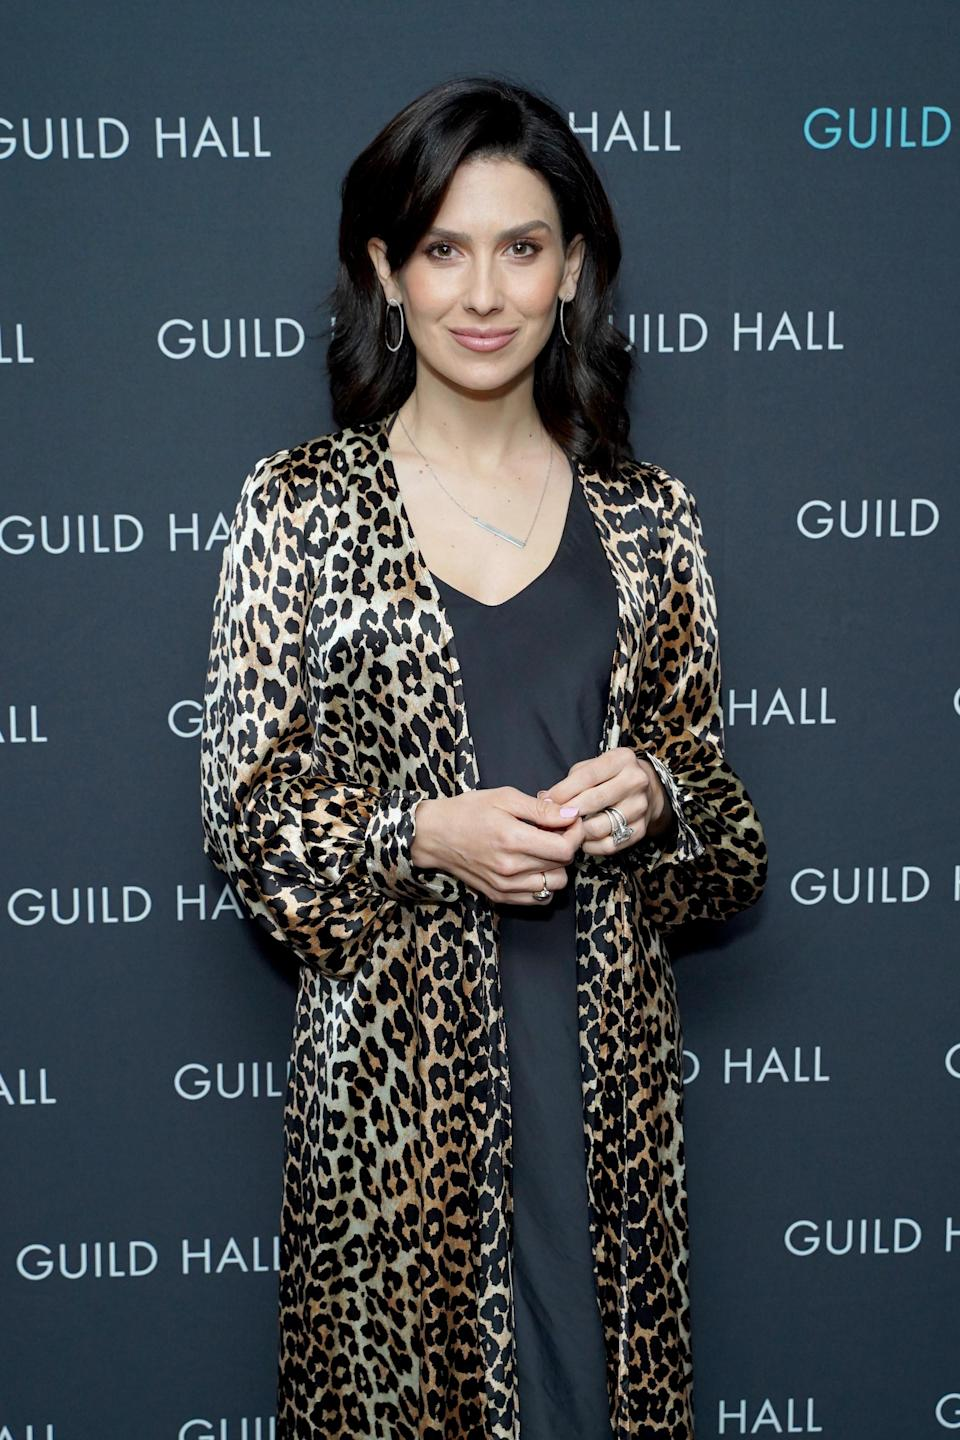 Hilaria Baldwin attends Guild Hall Academy Of The Arts Achievement Awards 2020 at the Rainbow Room on March 03, 2020 in New York City